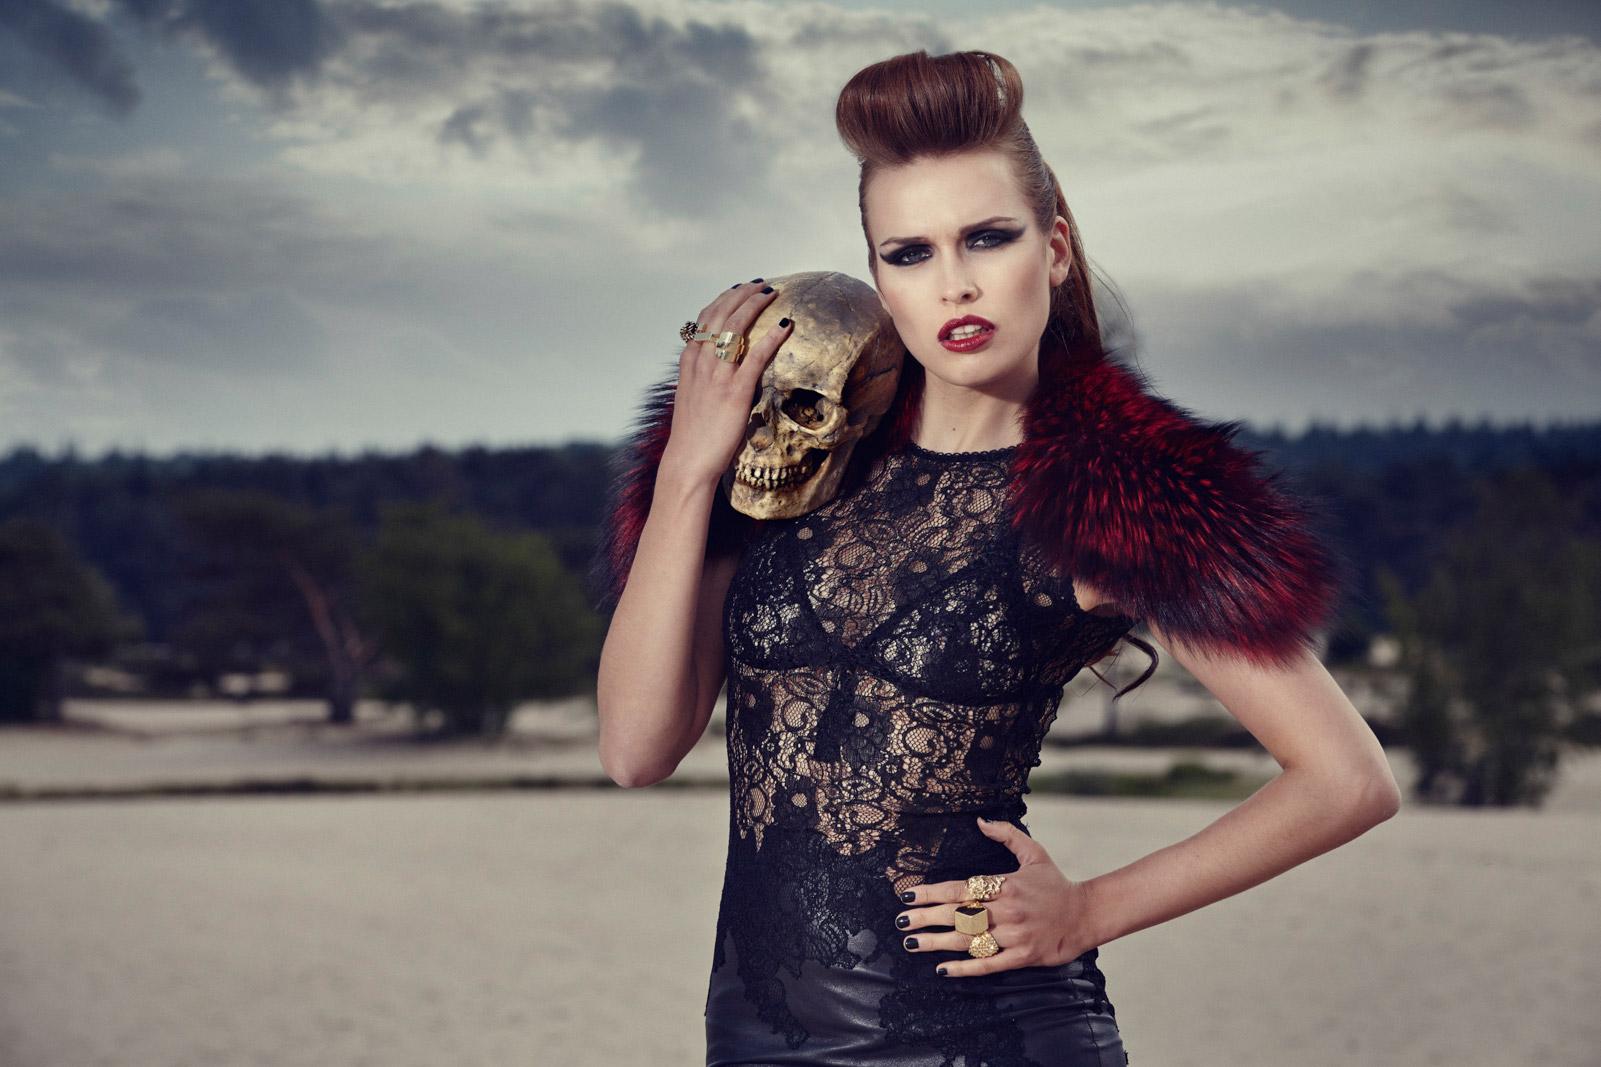 Thomas_Thijssen_Photography_Fashion_Skull_06